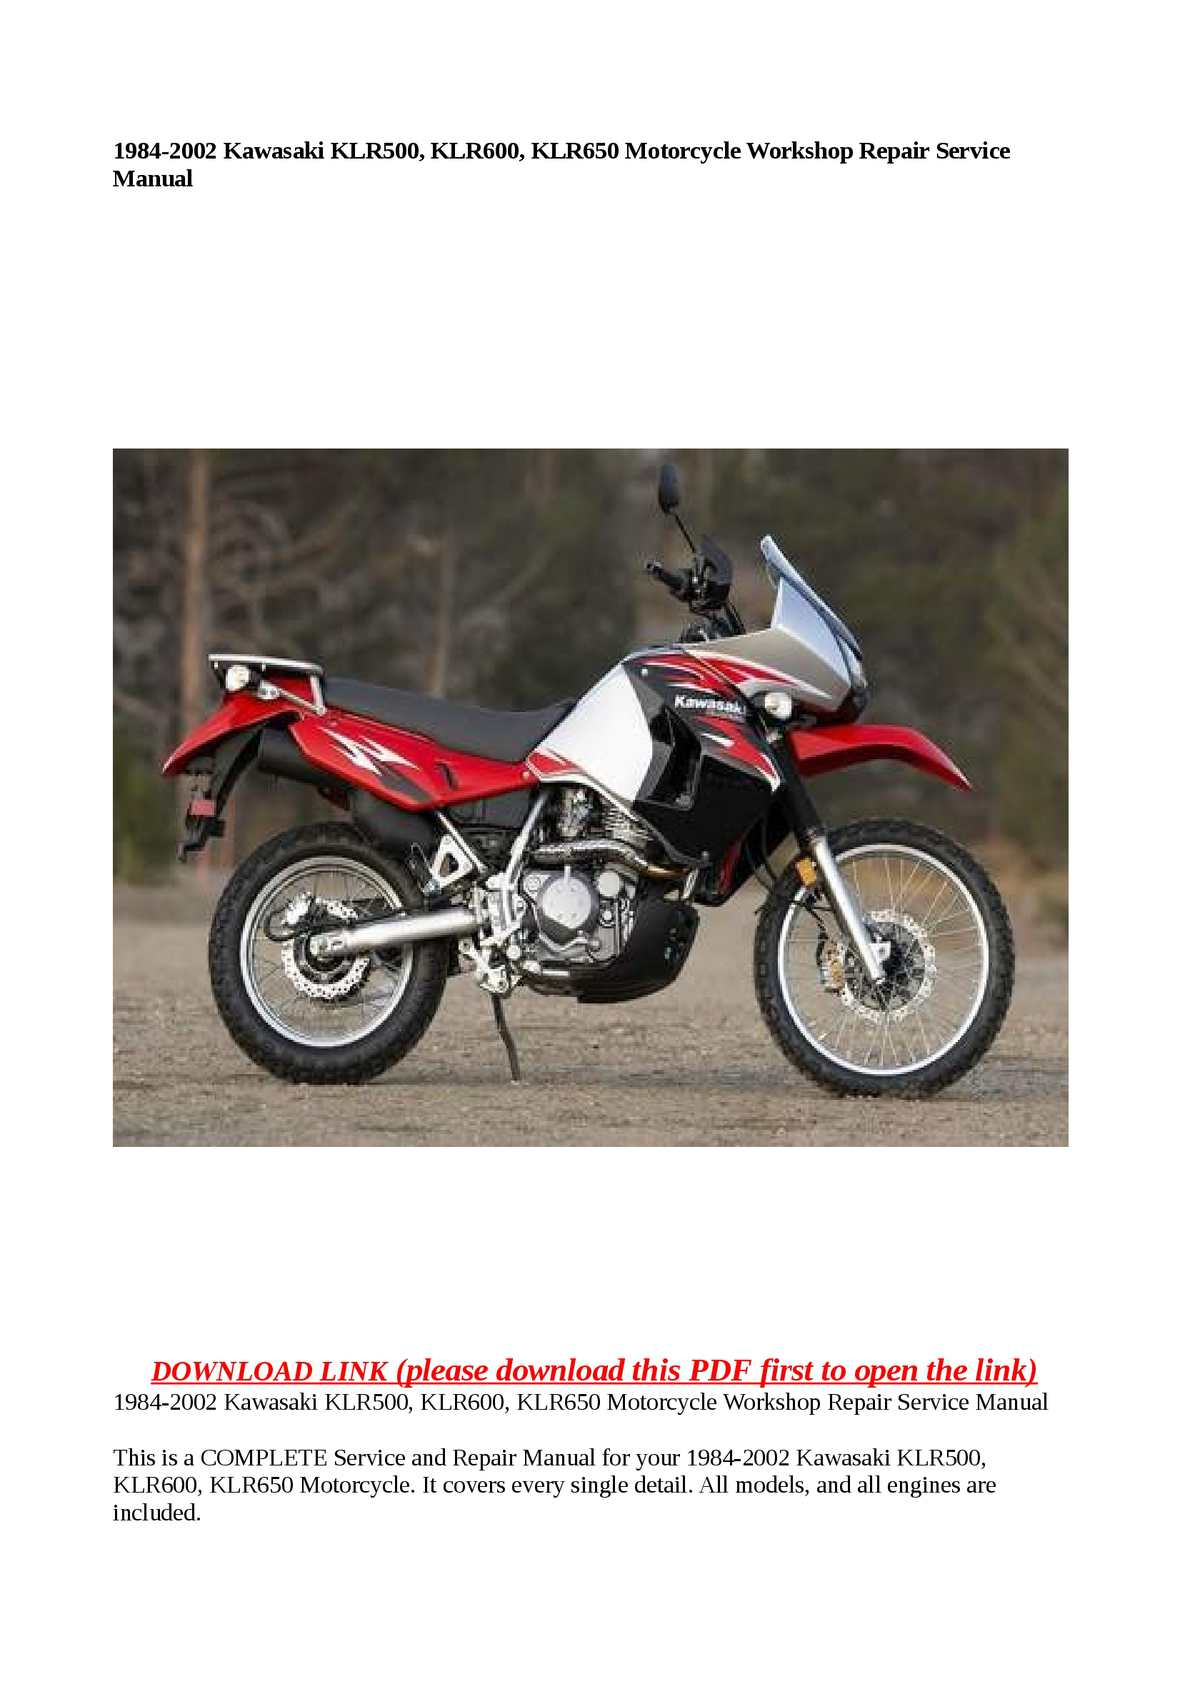 Kl600 Wiring Diagram Schematics Kawasaki Klr650 A9 1995 Motorcycle Electrical All Calamo 1988 Kr 1 Workshop Repair Service Manual Klr 600 Parts